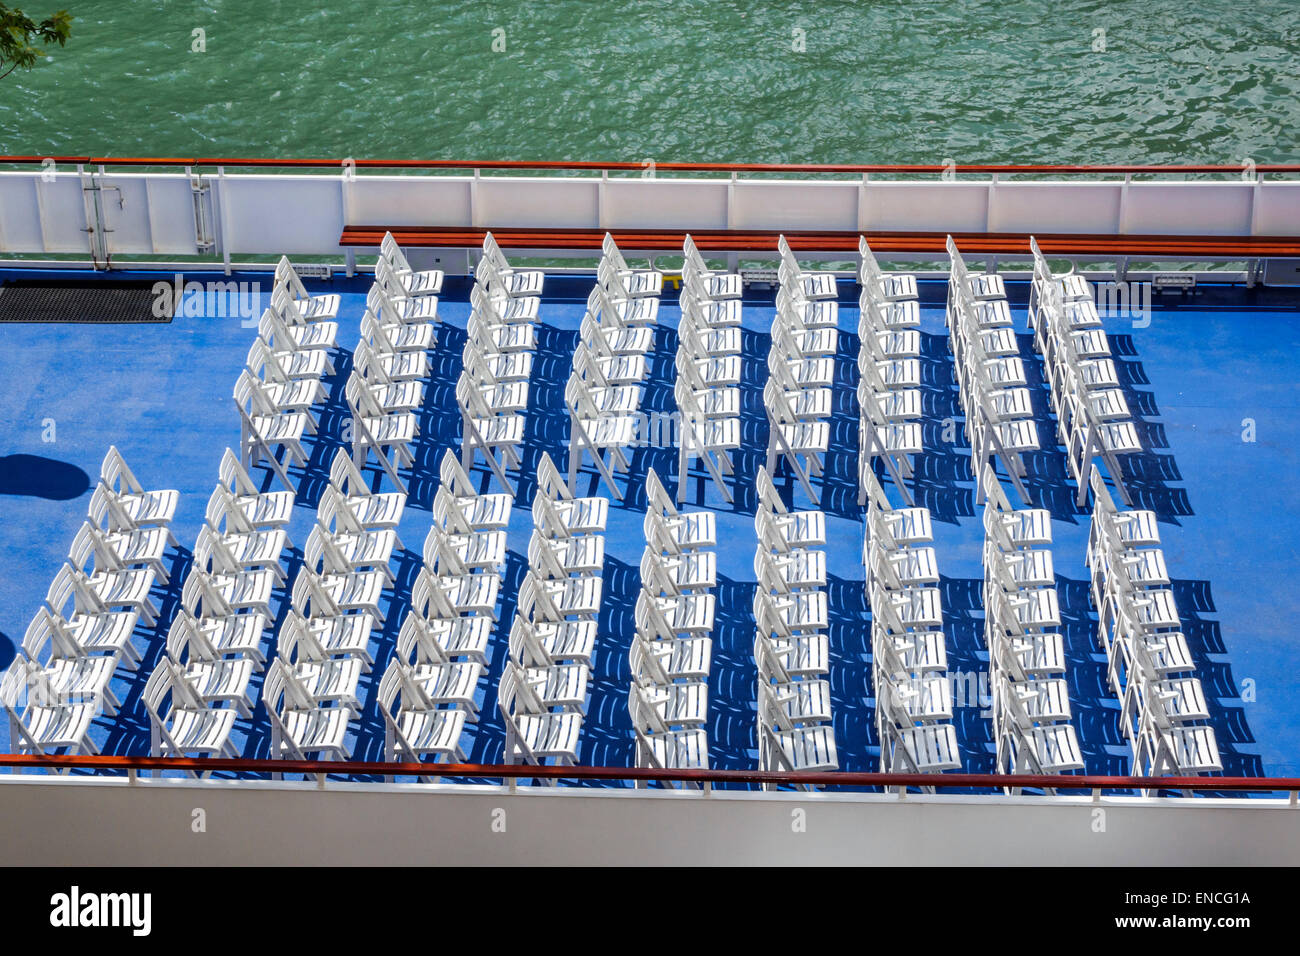 Chicago Illinois Chicago River boat tour boat upper deck chairs rows organized align water blue white empty - Stock Image